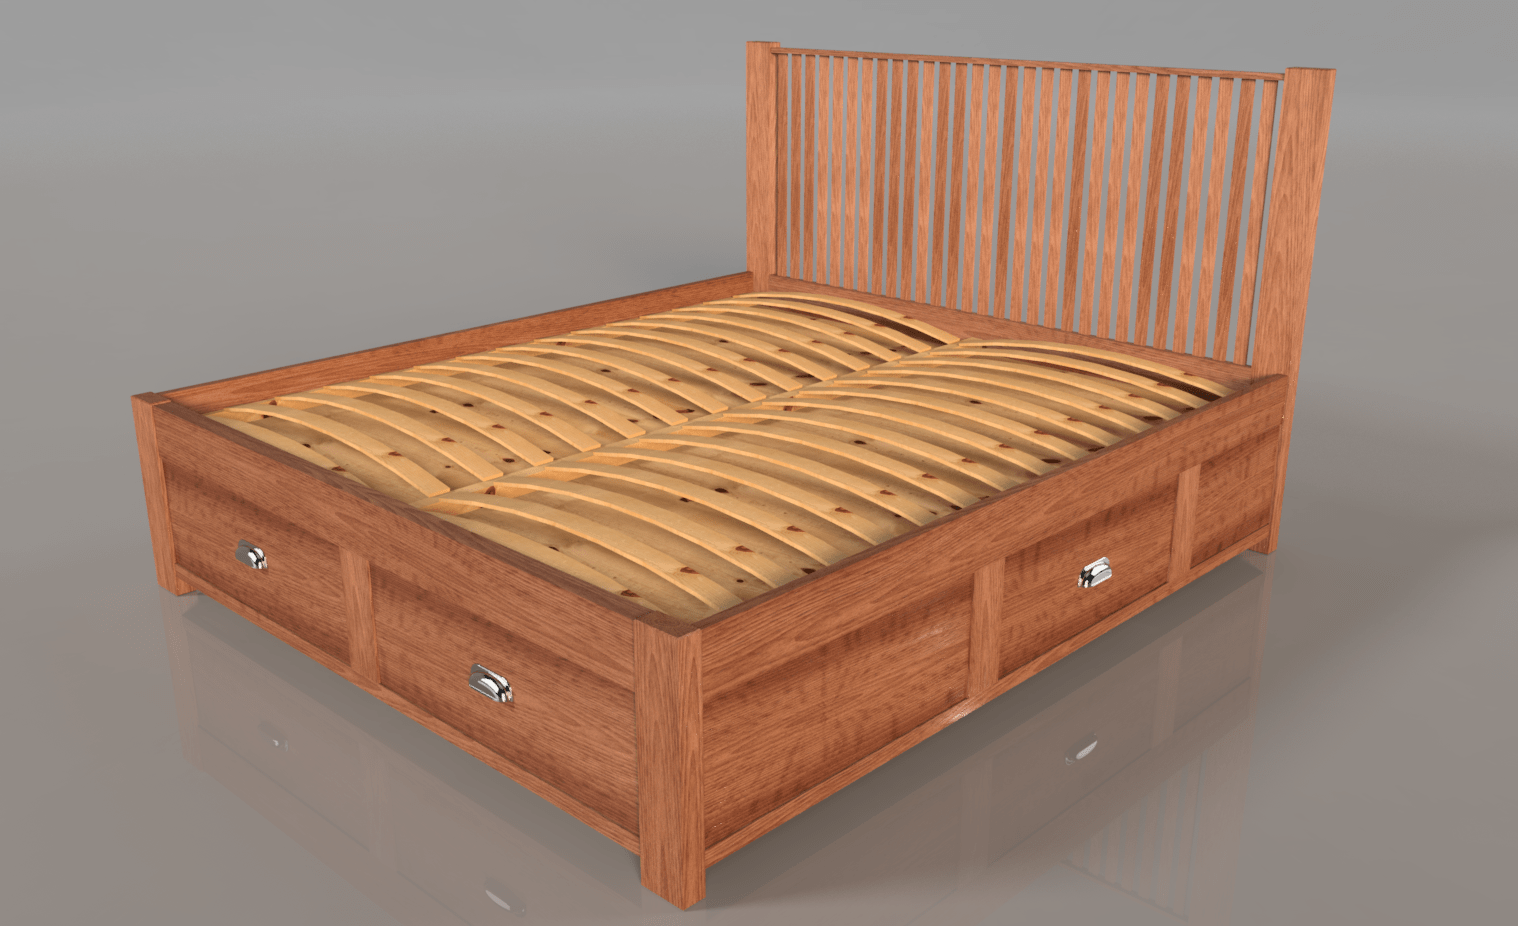 Handcrafted Solid-Wood Bed with Storage Drawers. Multiple Sizes and Woods